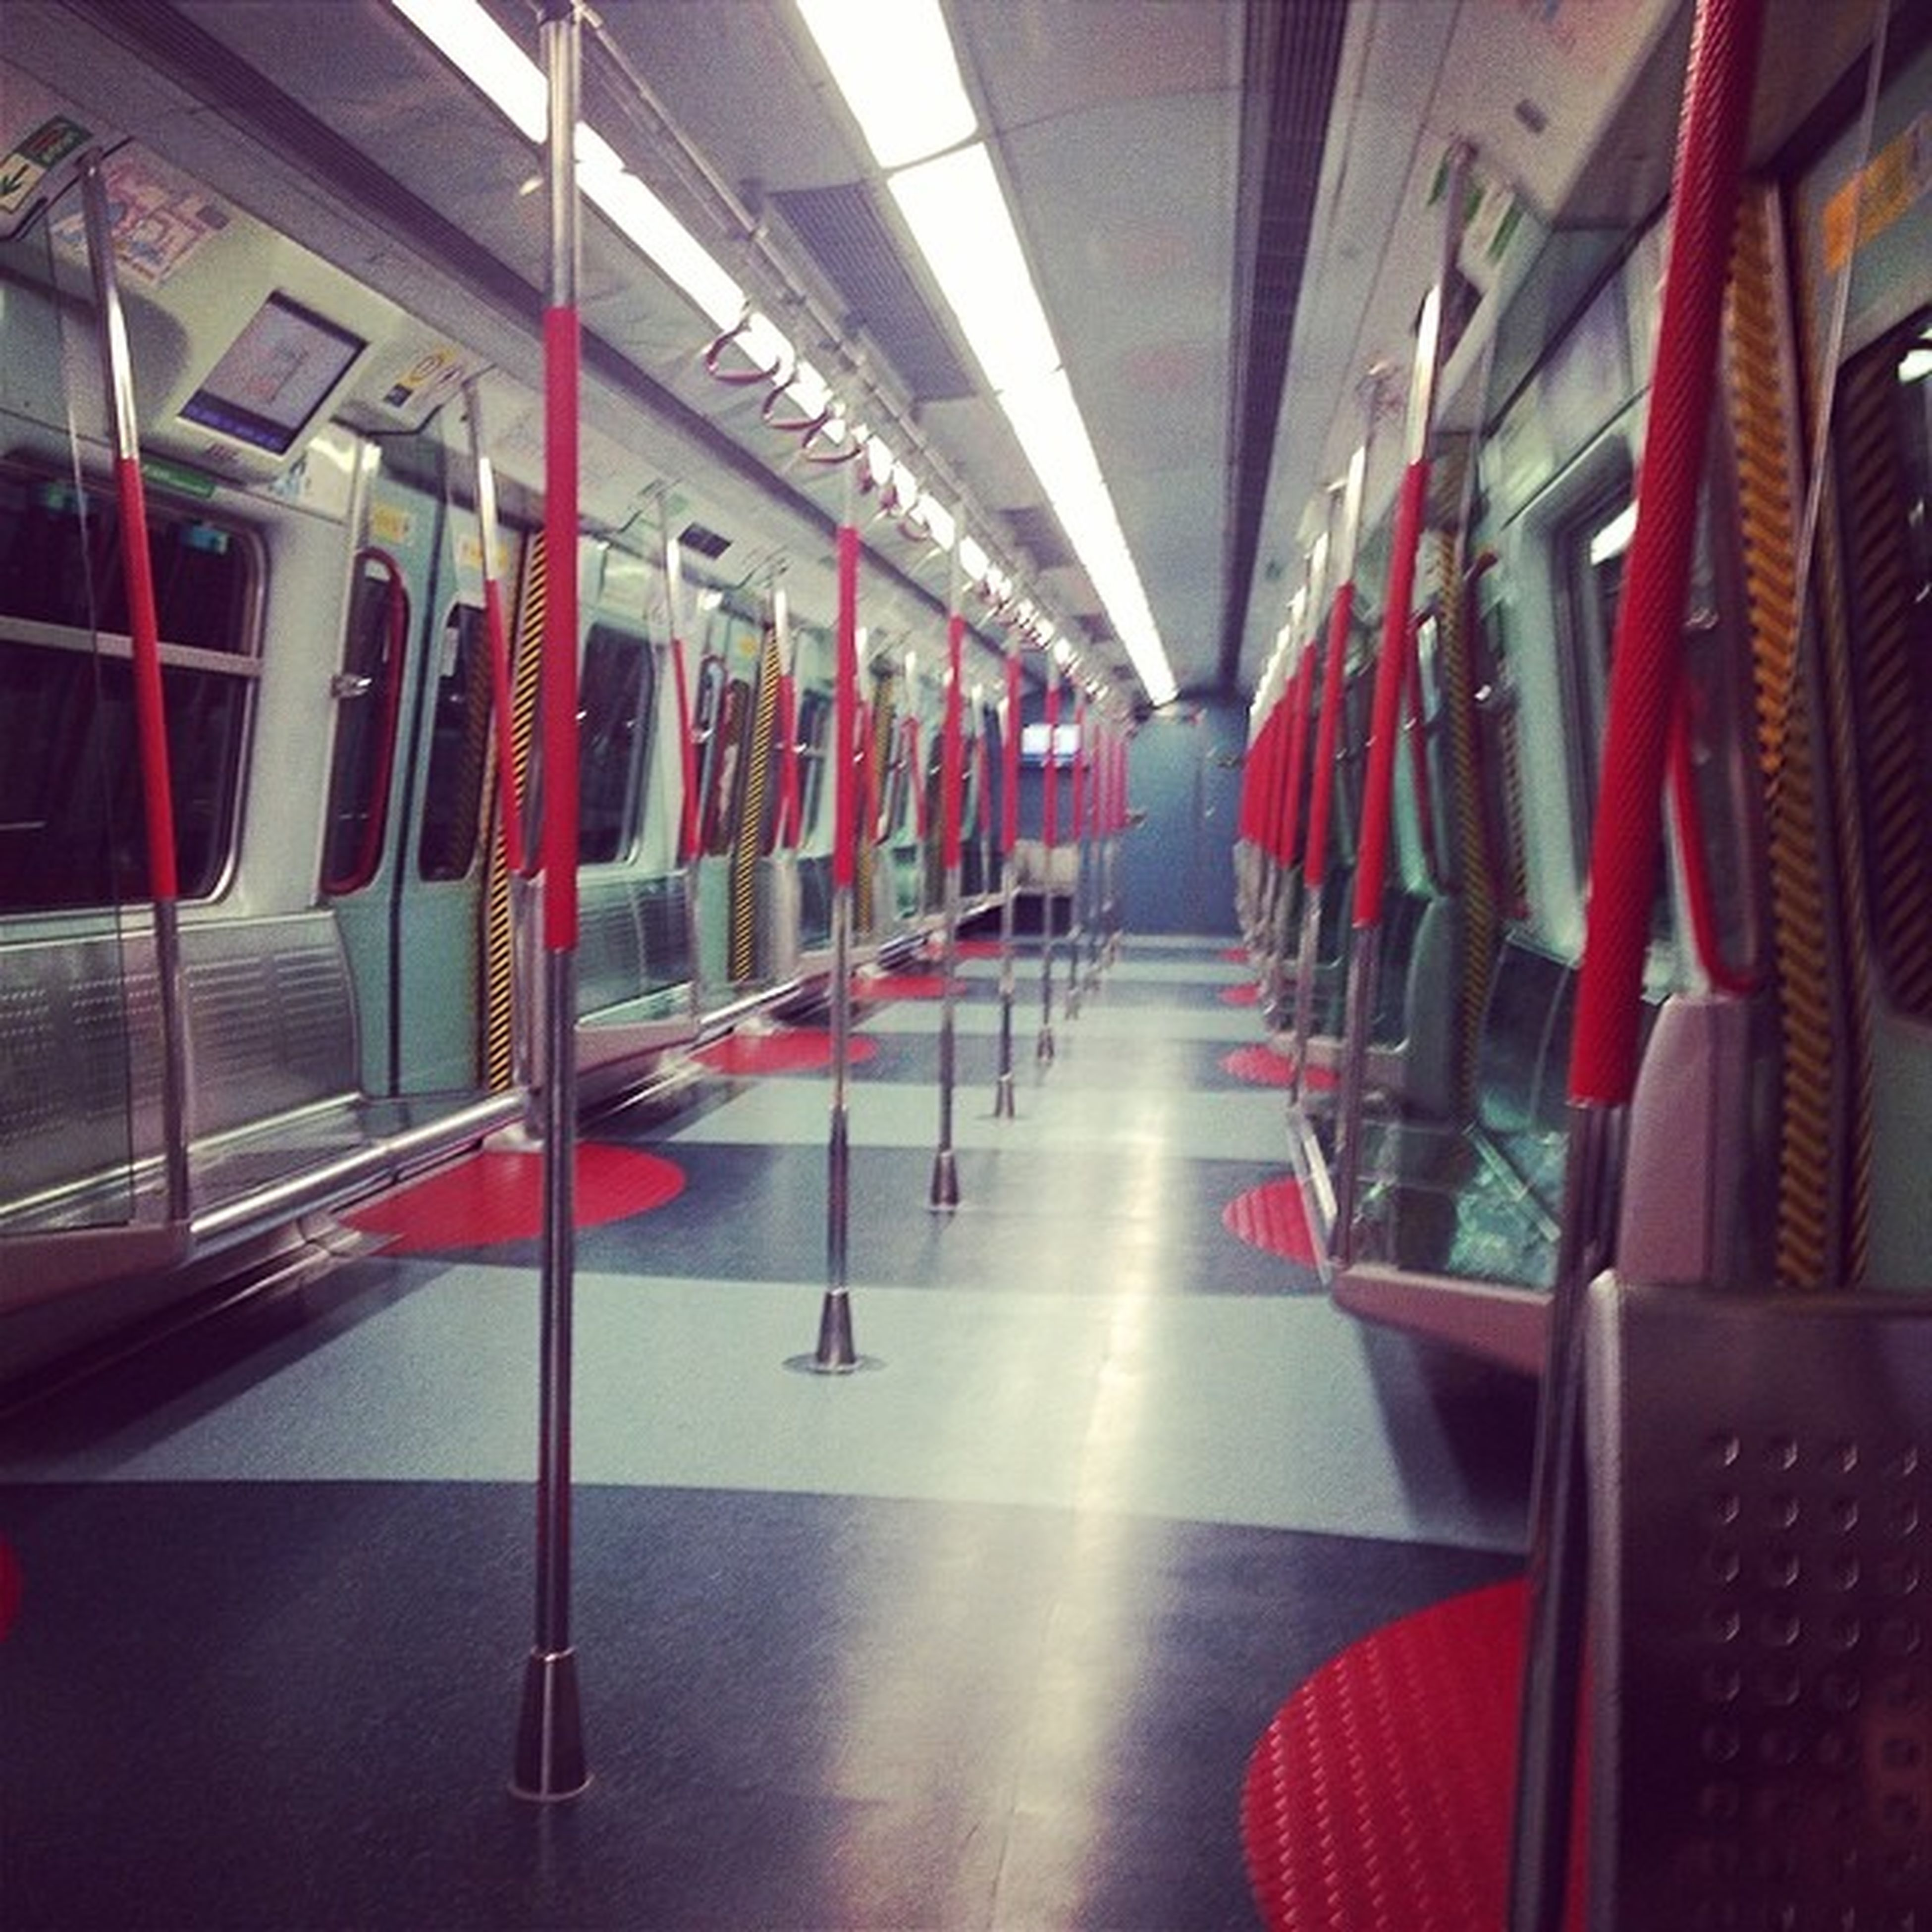 indoors, ceiling, absence, empty, modern, in a row, escalator, red, seat, transportation, architecture, chair, built structure, reflection, incidental people, flooring, tiled floor, glass - material, interior, vehicle seat